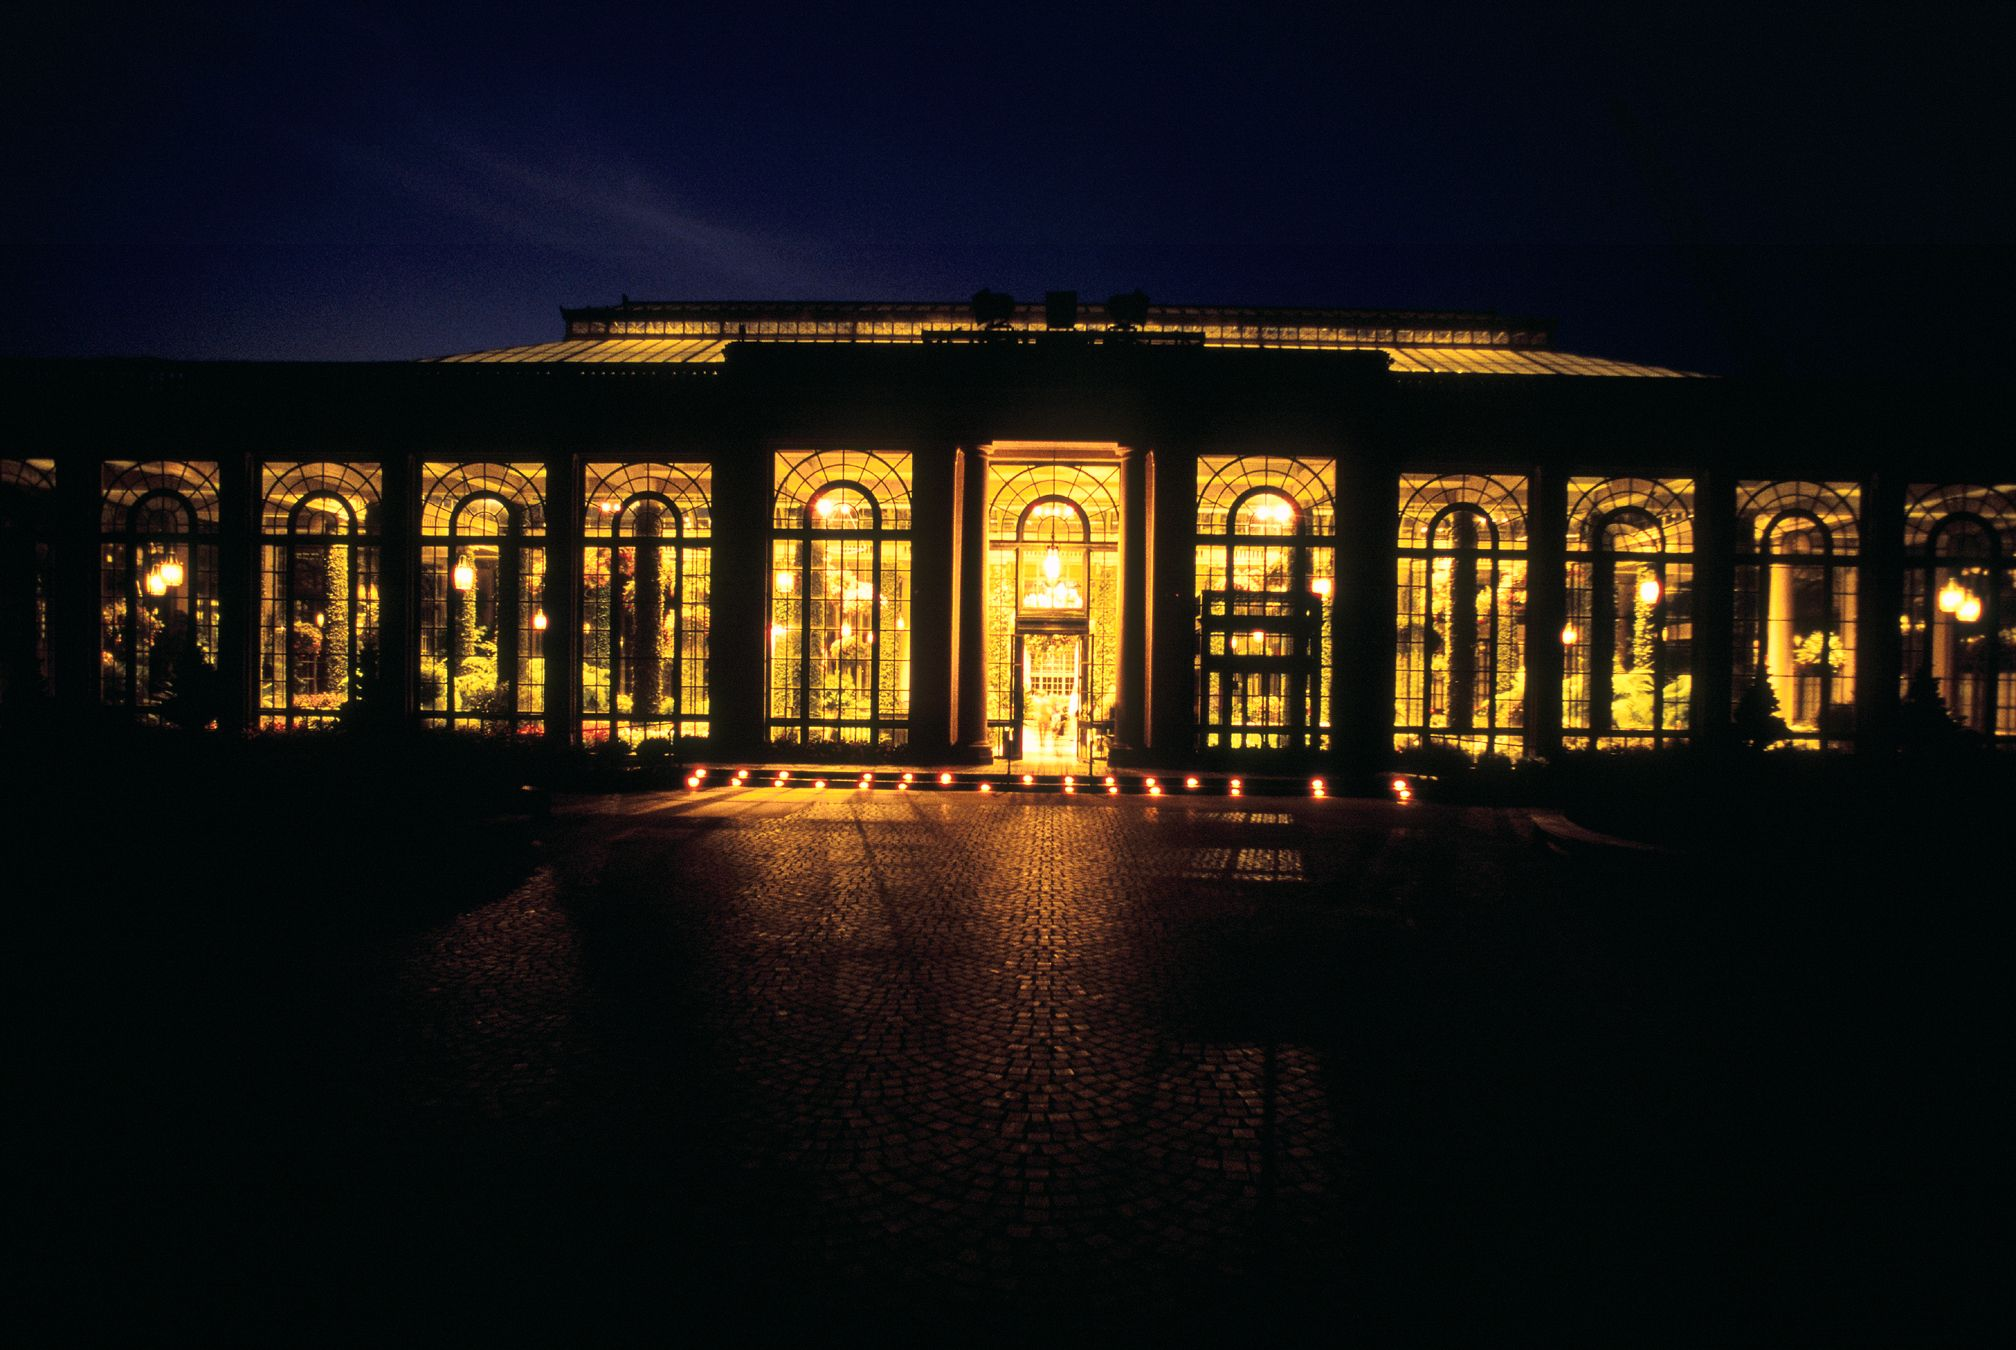 The Orangery at Longwood Gardens